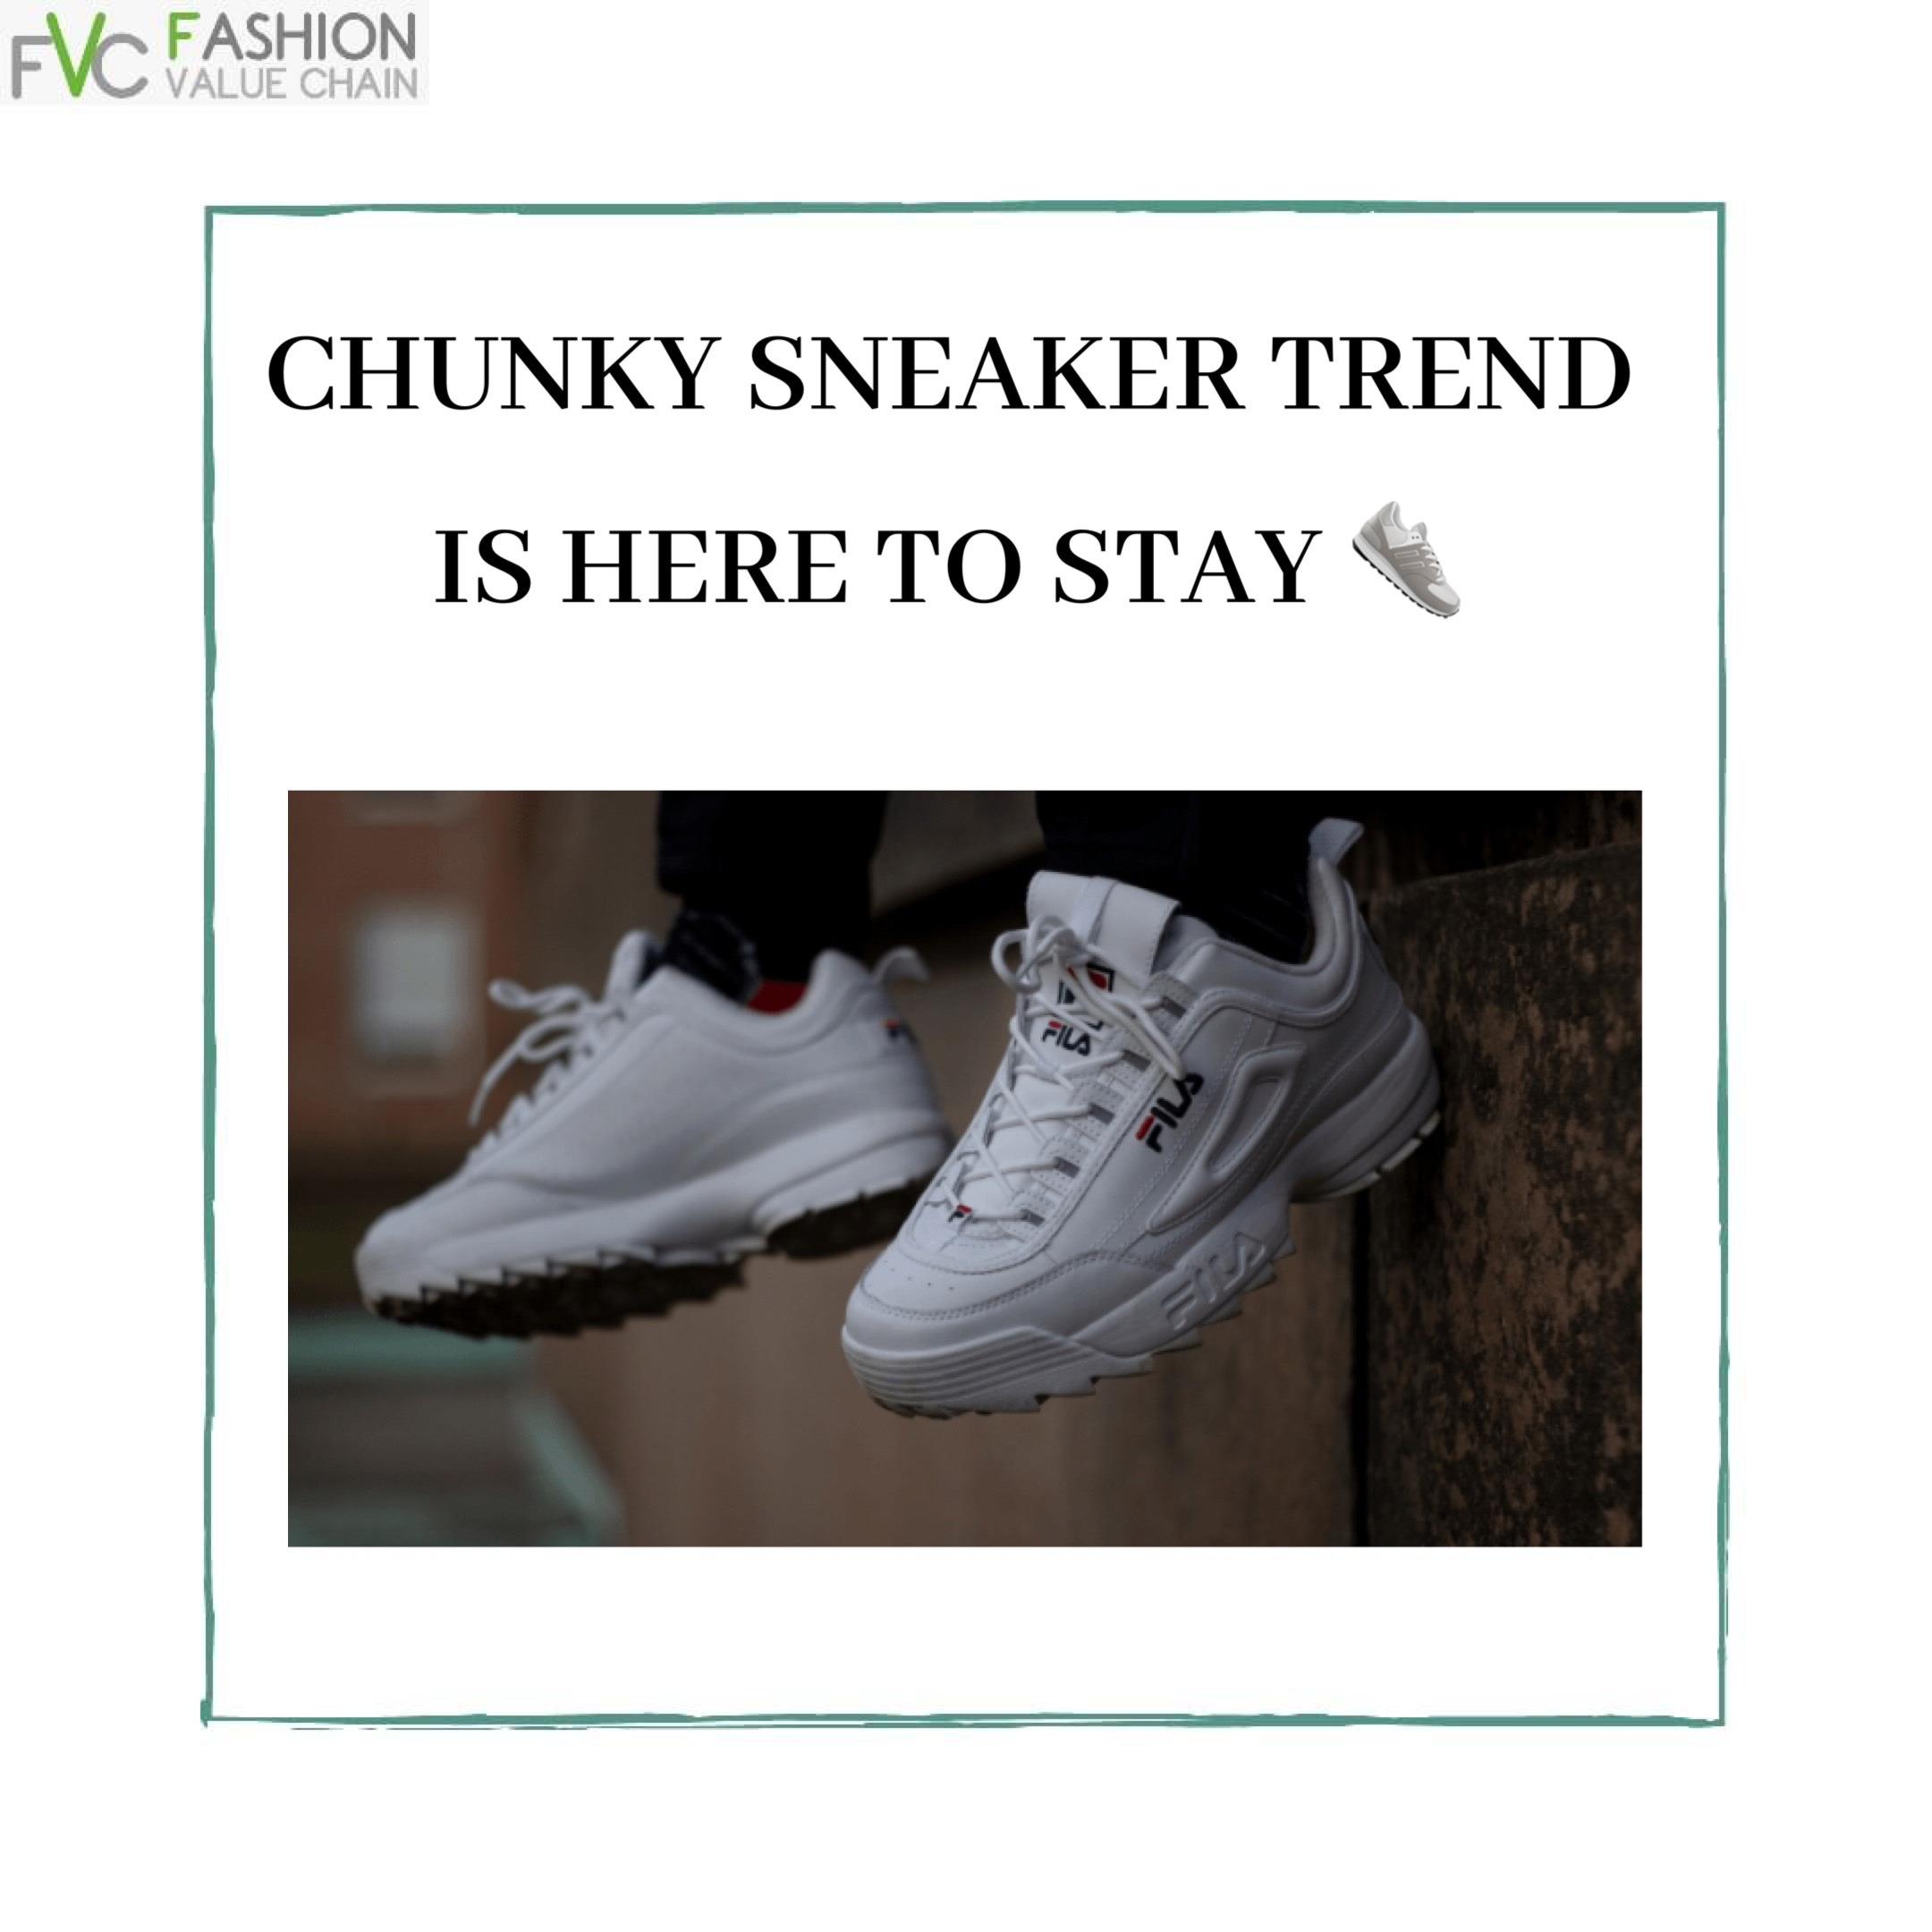 CHUNKY SNEAKER TREND IS HERE TO STAY.